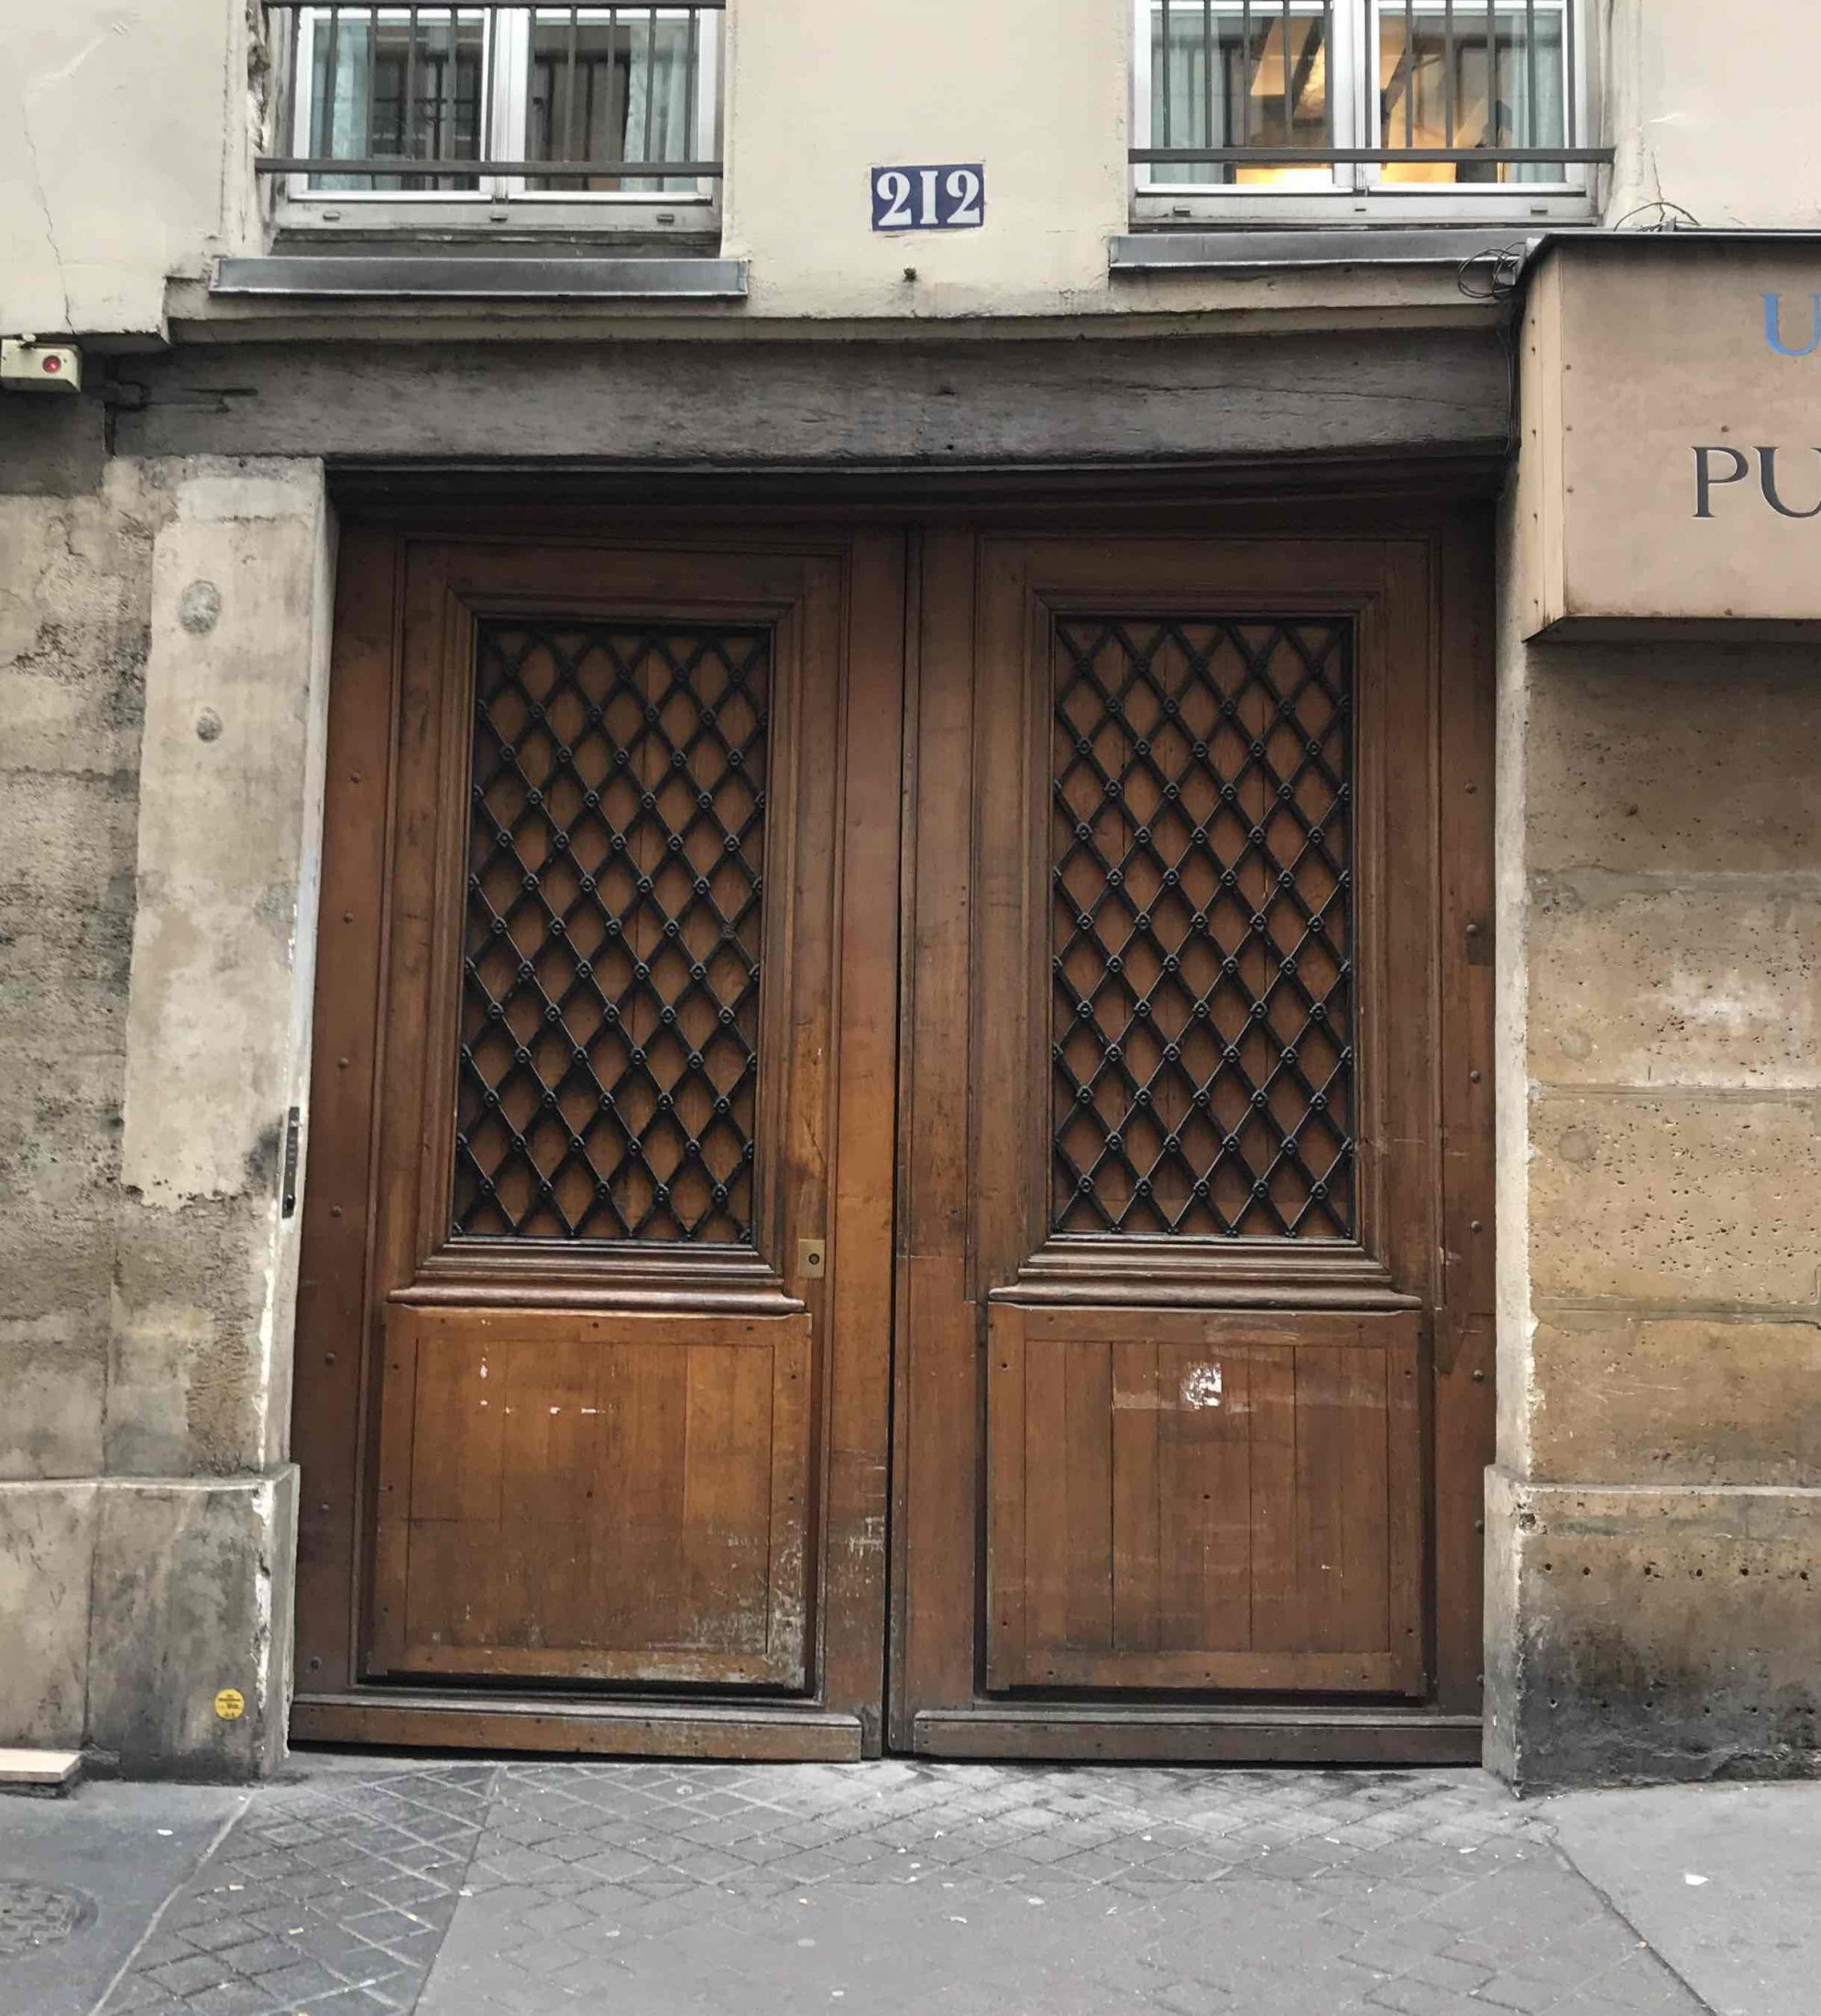 212 RUE SAINT JACQUES